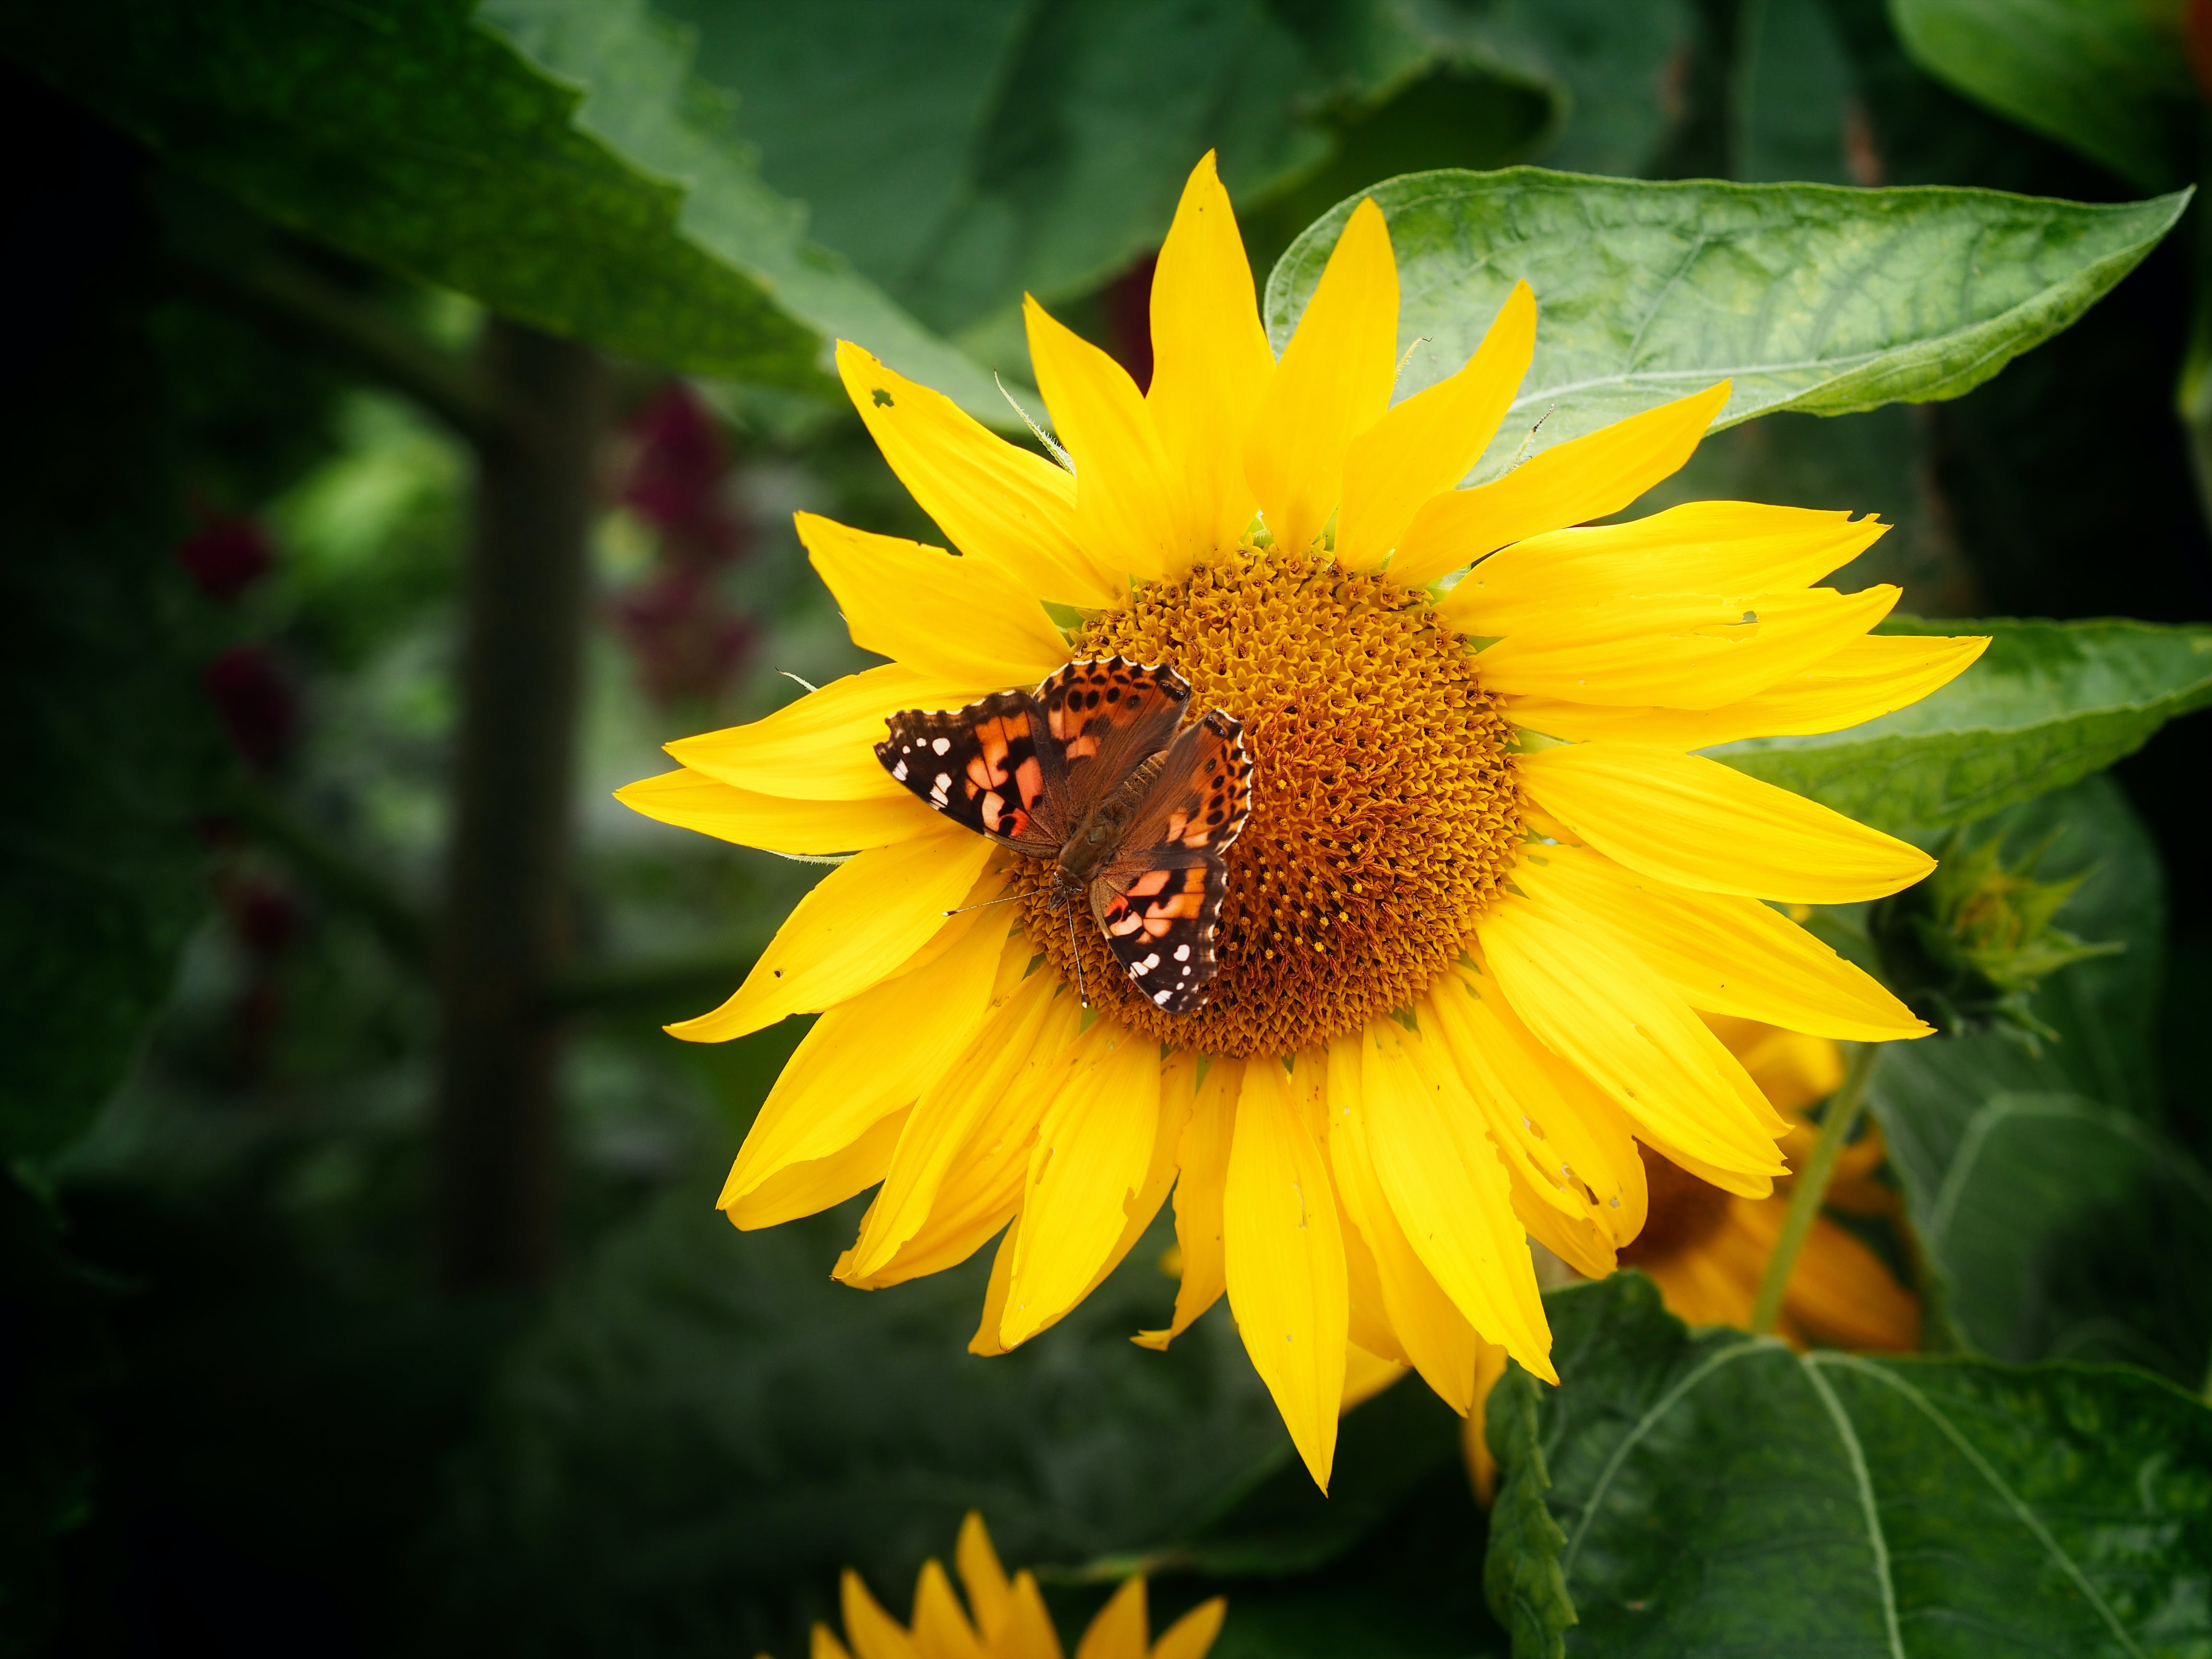 Free stock photo of butterfly on a flower, sunflower